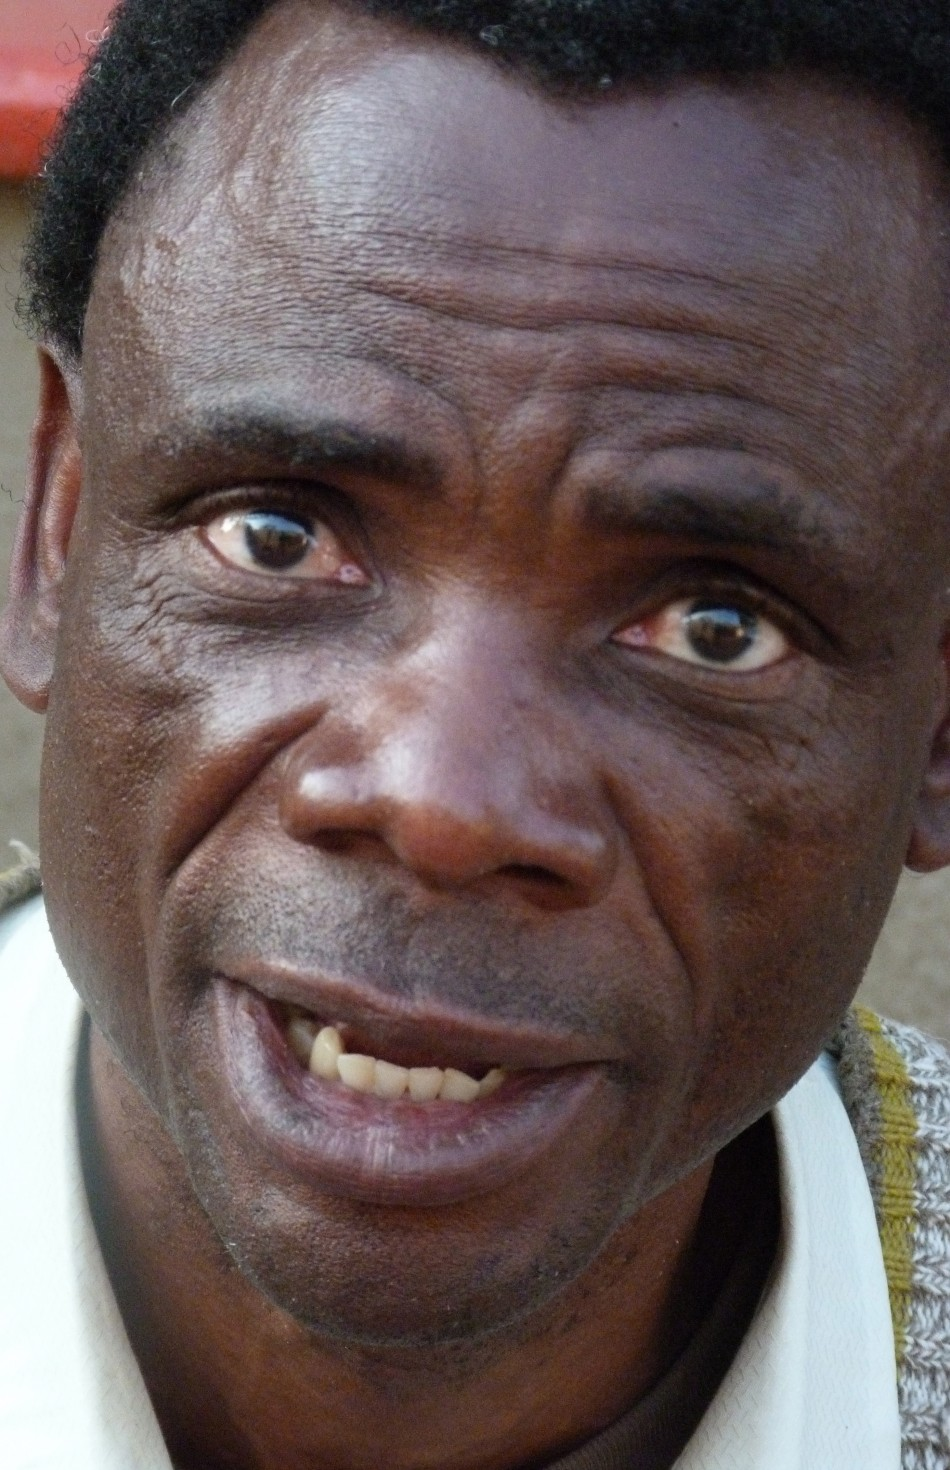 Lukozi Bulimwengo, a Congolese refugee in South Africa